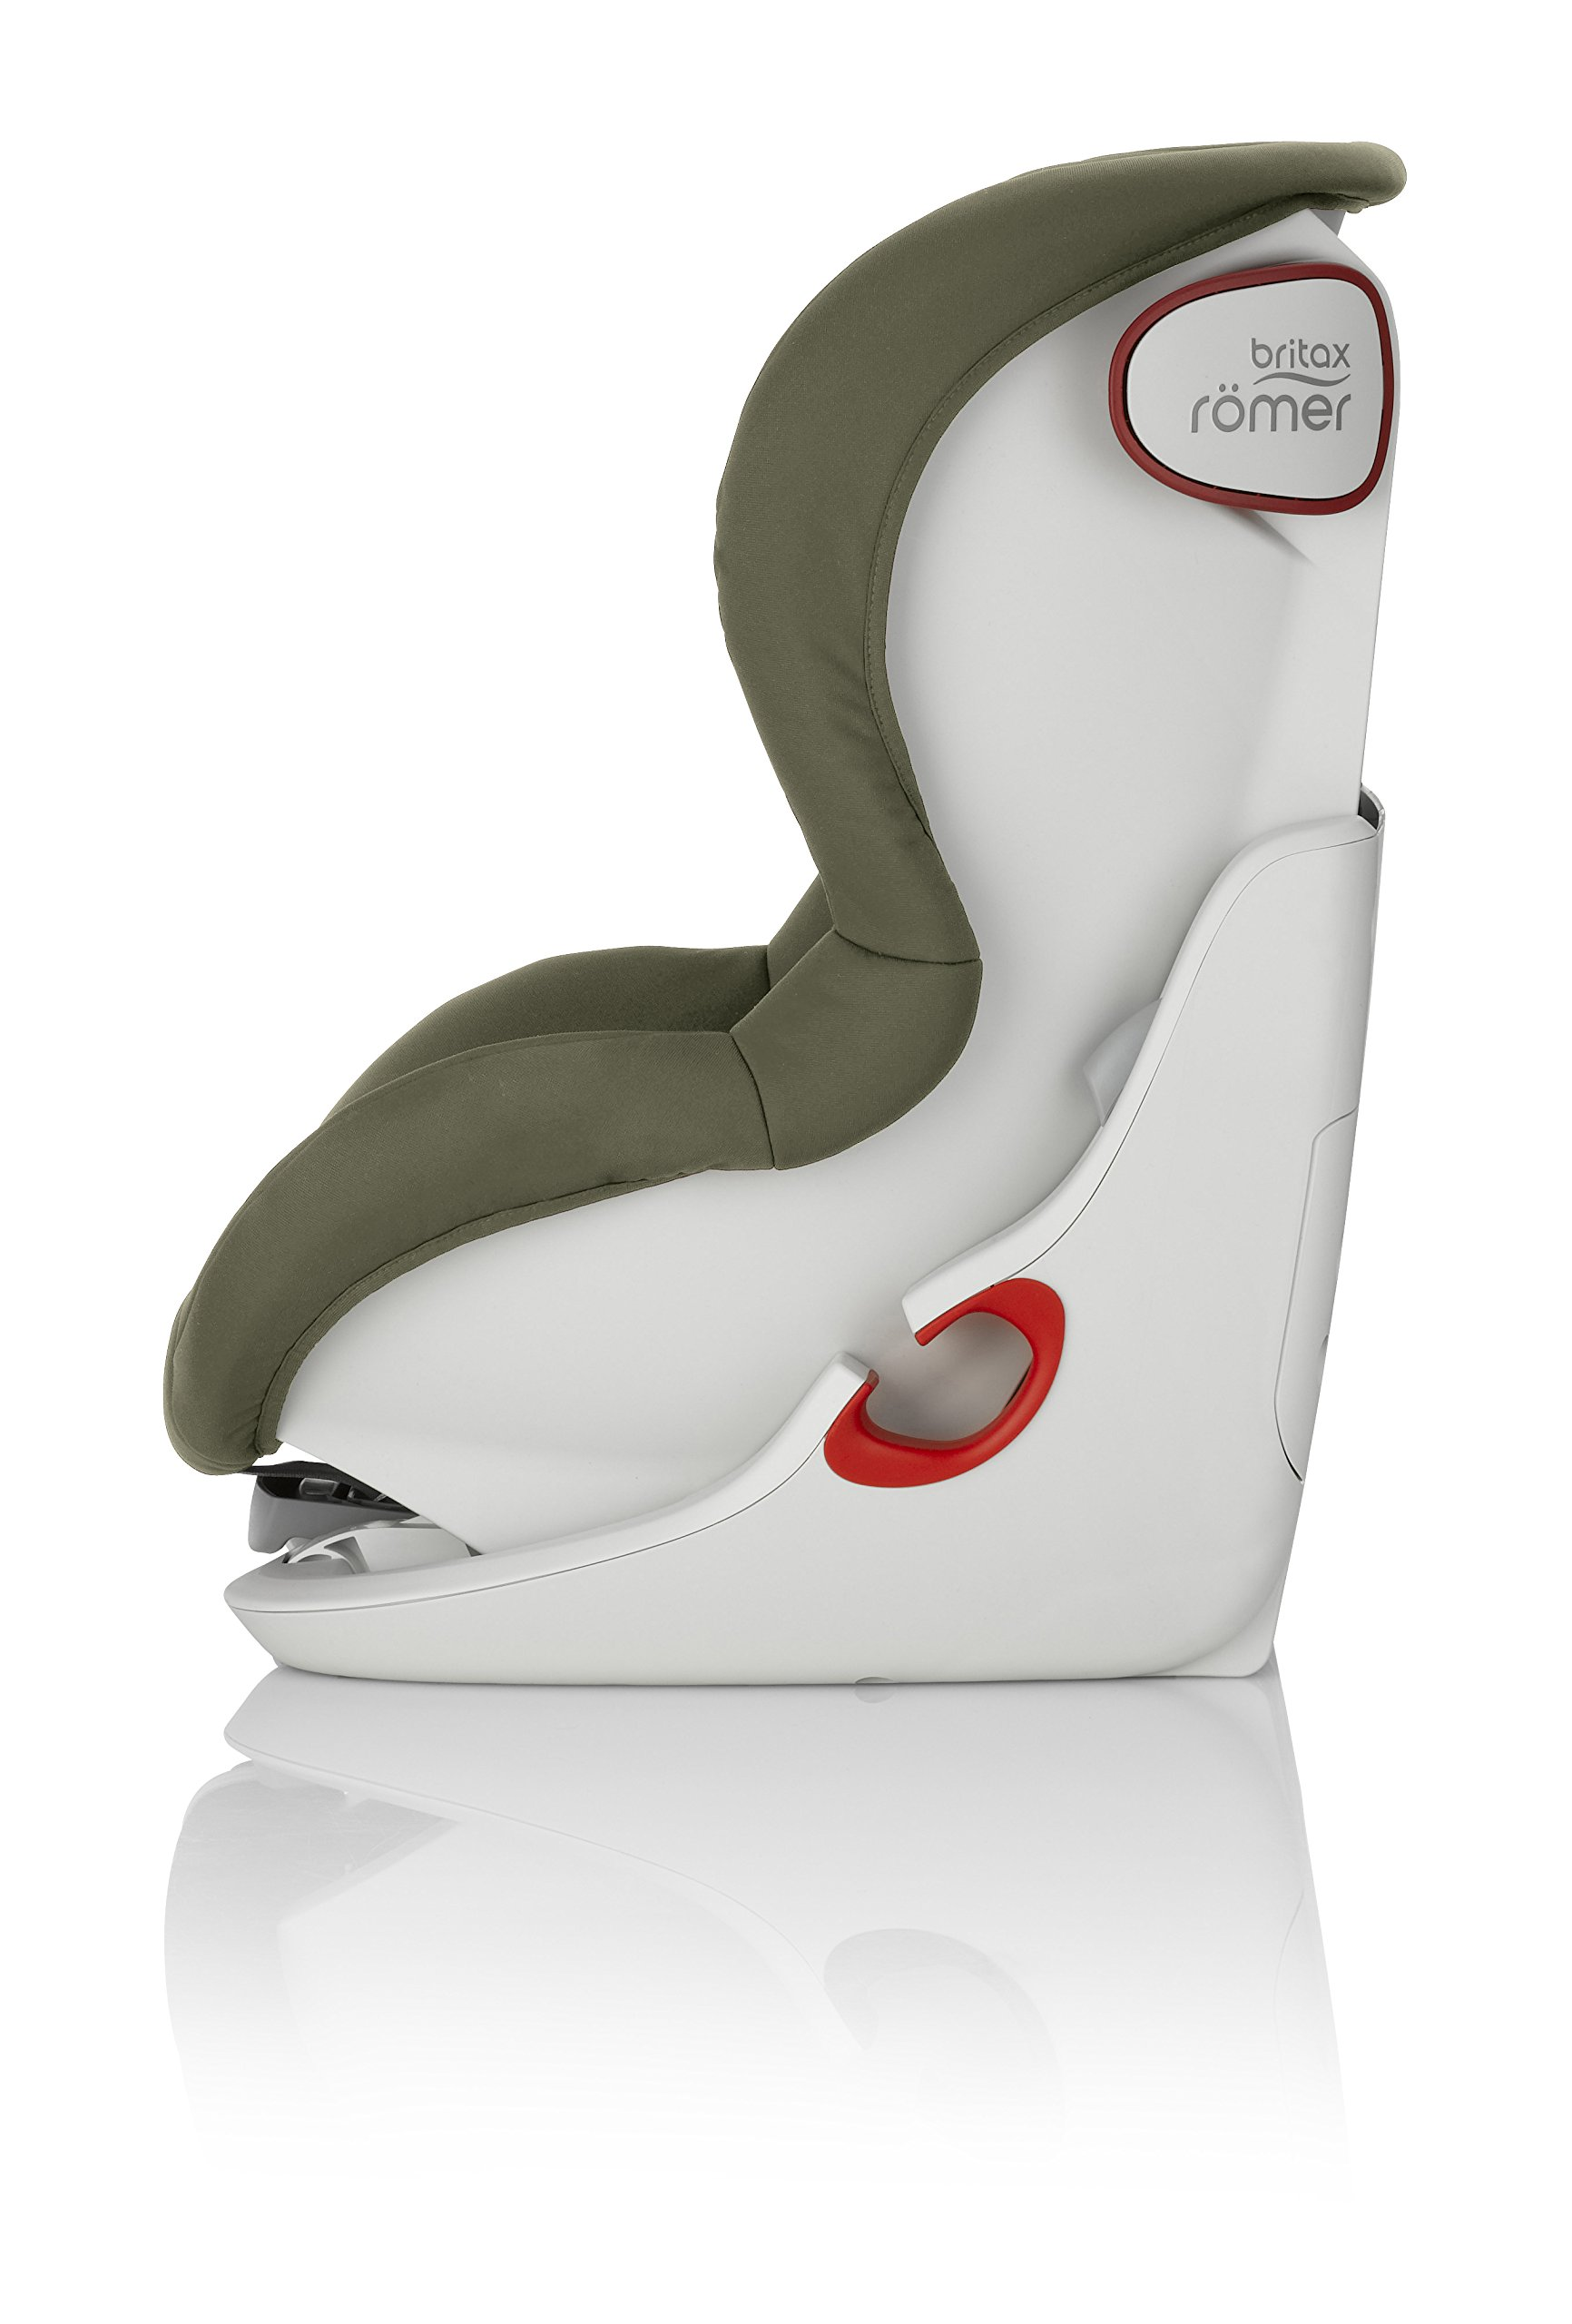 Britax Römer King II Car Seat, Olive Green Britax Römer Easy installation - with tilting seat and patented seat belt tensioning system Optimum protection - performance chest pads, deep, padded side wings 2